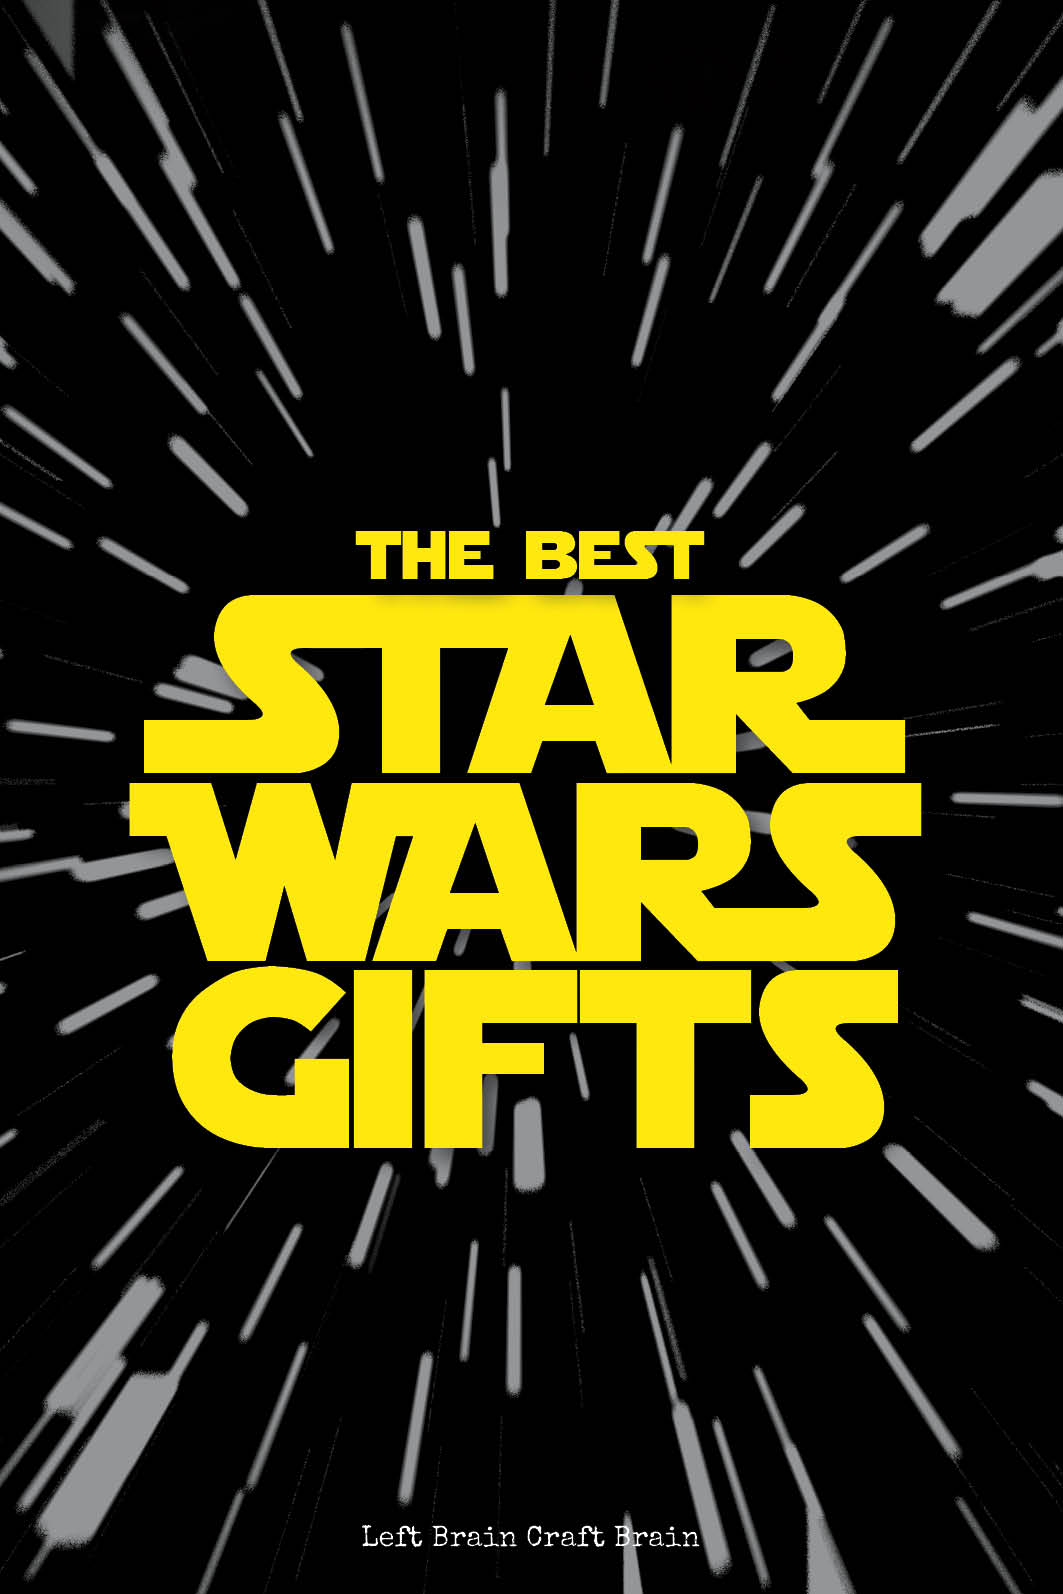 Star Wars fans will love getting a present from this huge list of the Best Star Wars Gifts. From Star Wars Lego to Star Wars games to Star Wars Toys and Star Wars Collectibles, this list has it all.